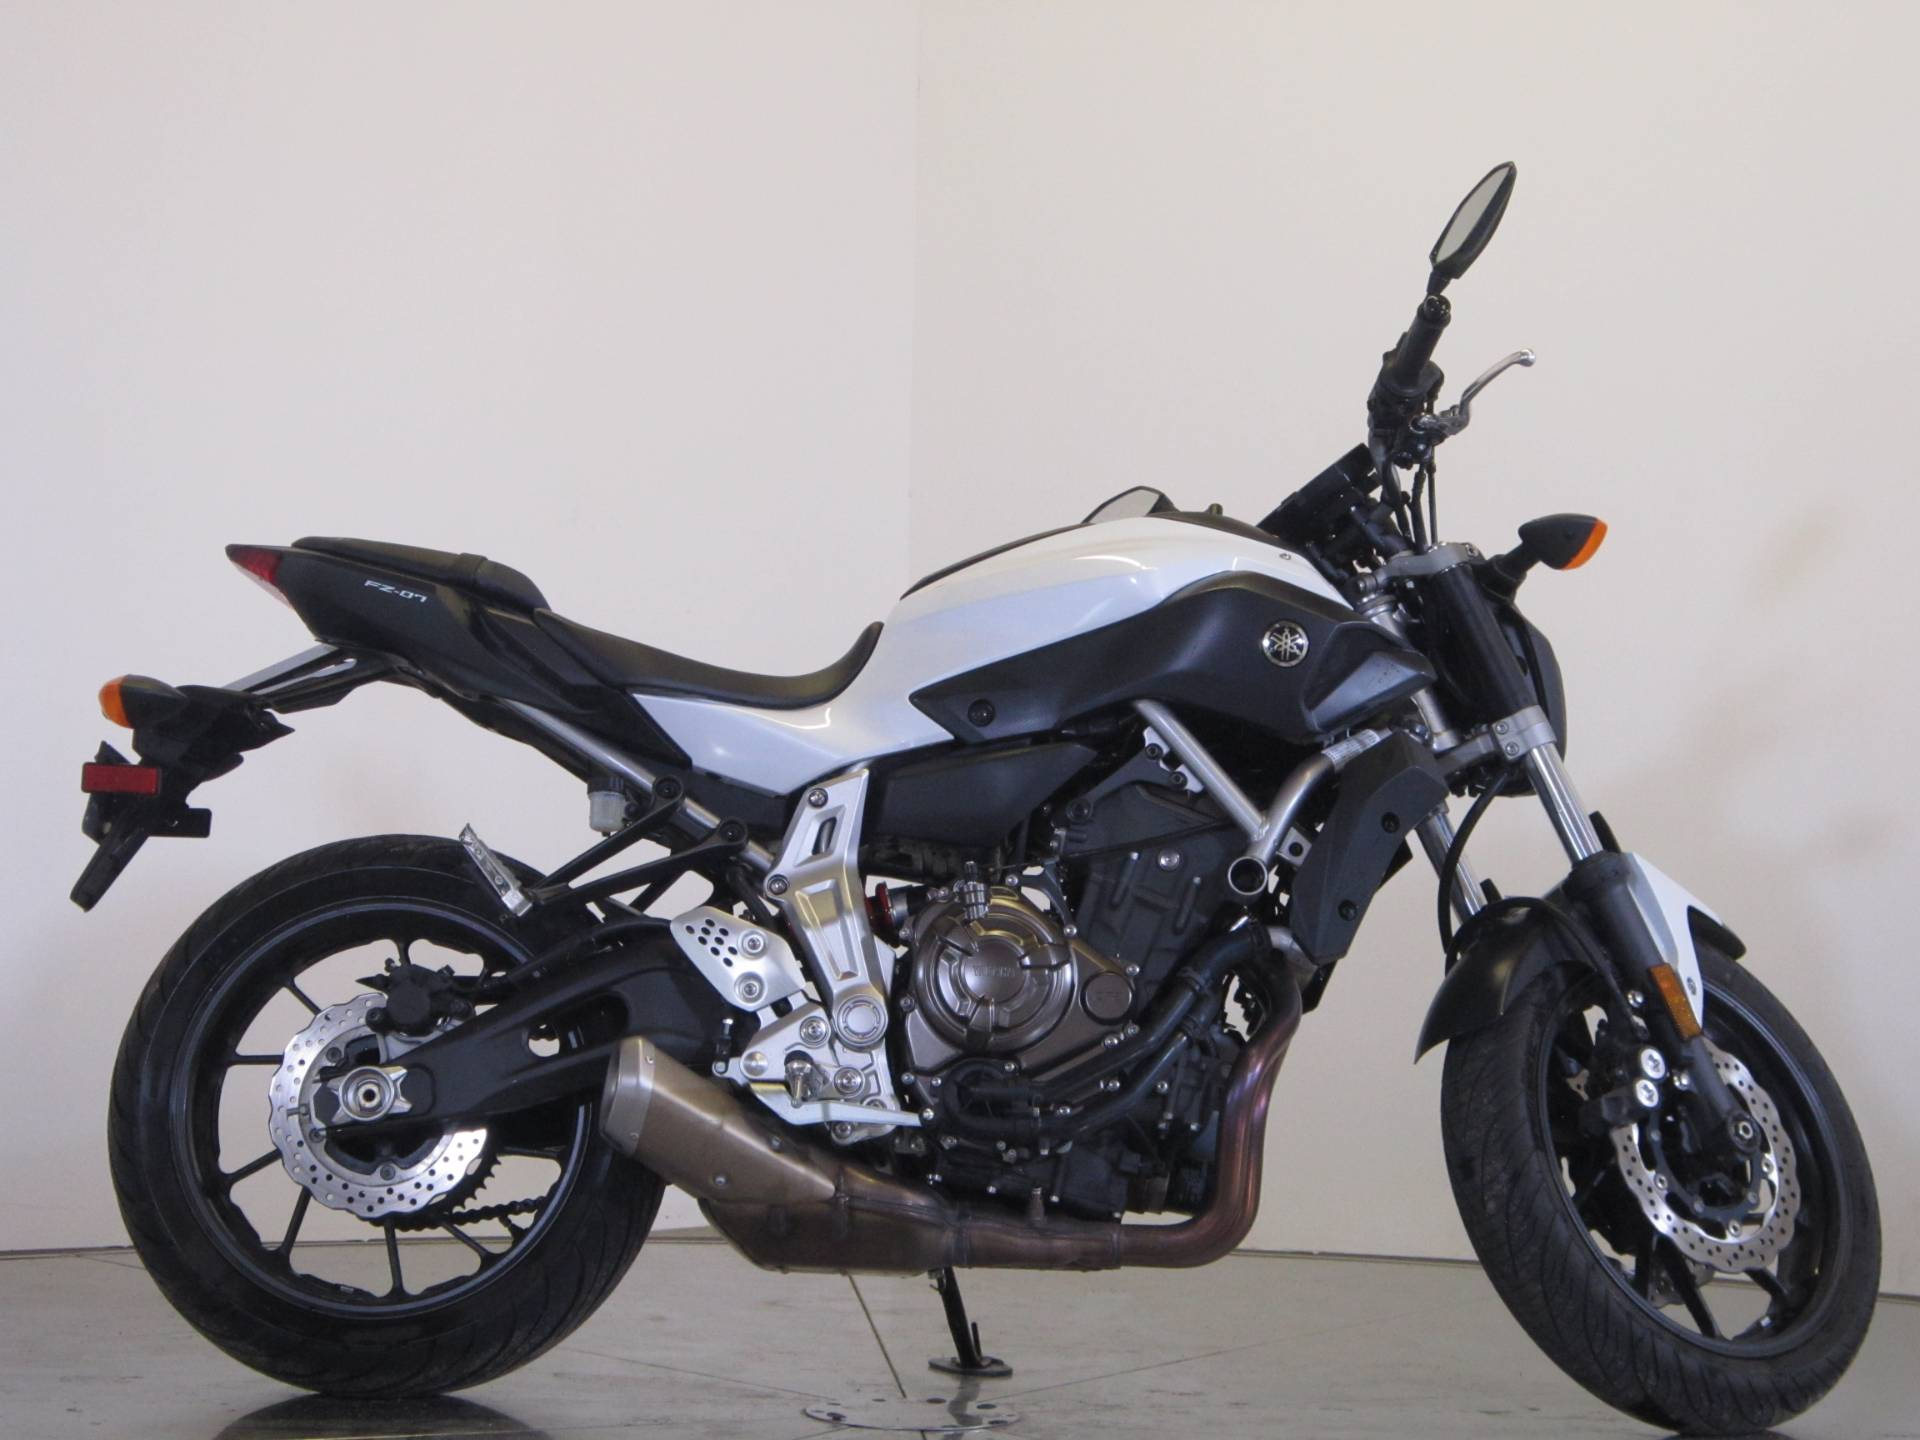 2015 Yamaha FZ-07 for sale 214989